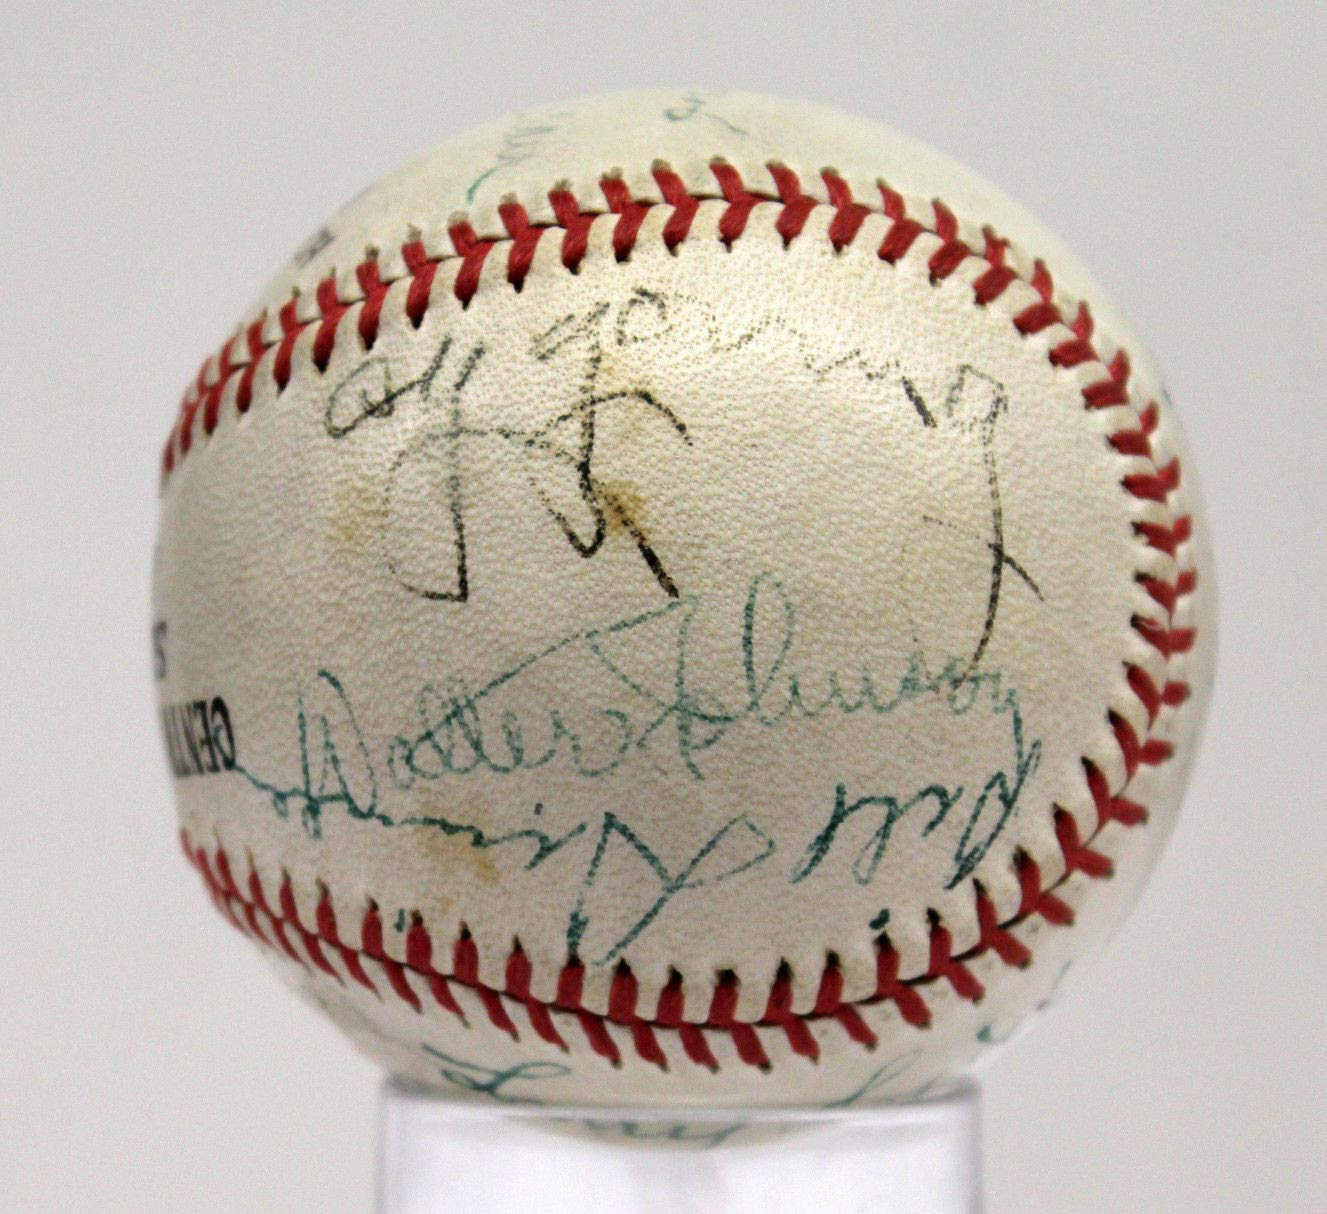 Circa 1939 Hall Of Famers Autographed Signed Basebal With Young Johnson Lajoie Mack PSA/DNA Authentic